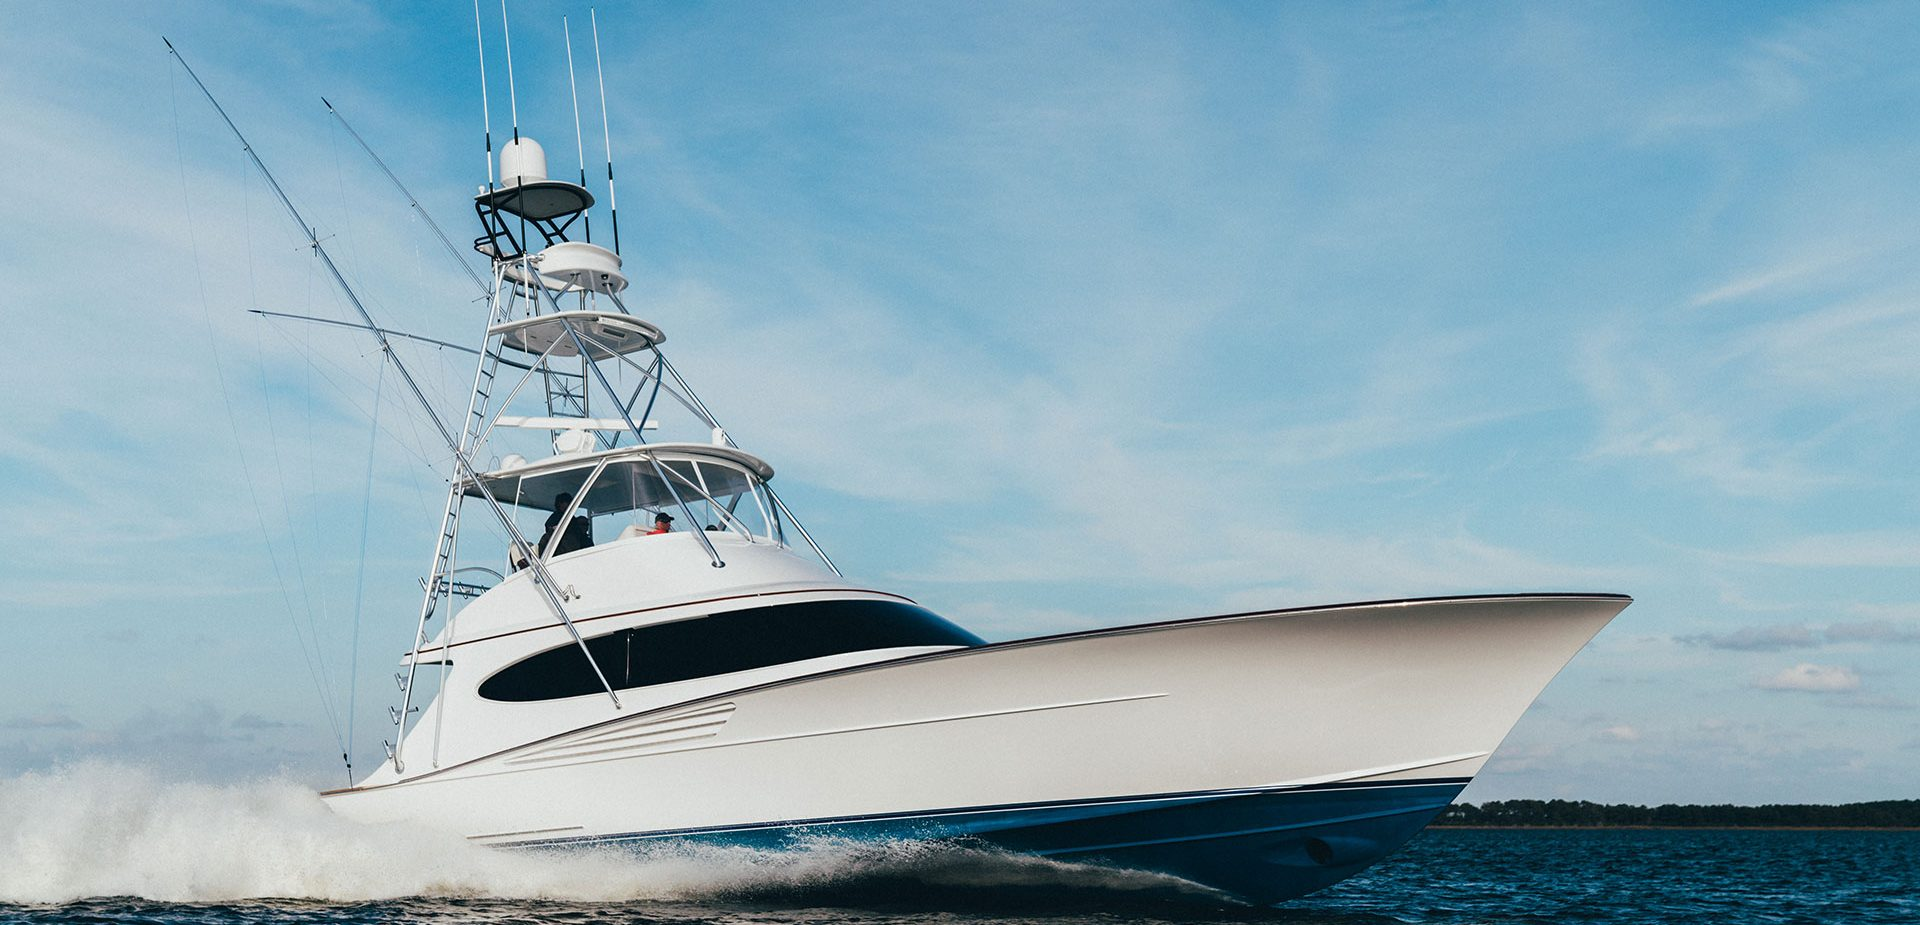 62 Bayliss Sportfish running on the ocean